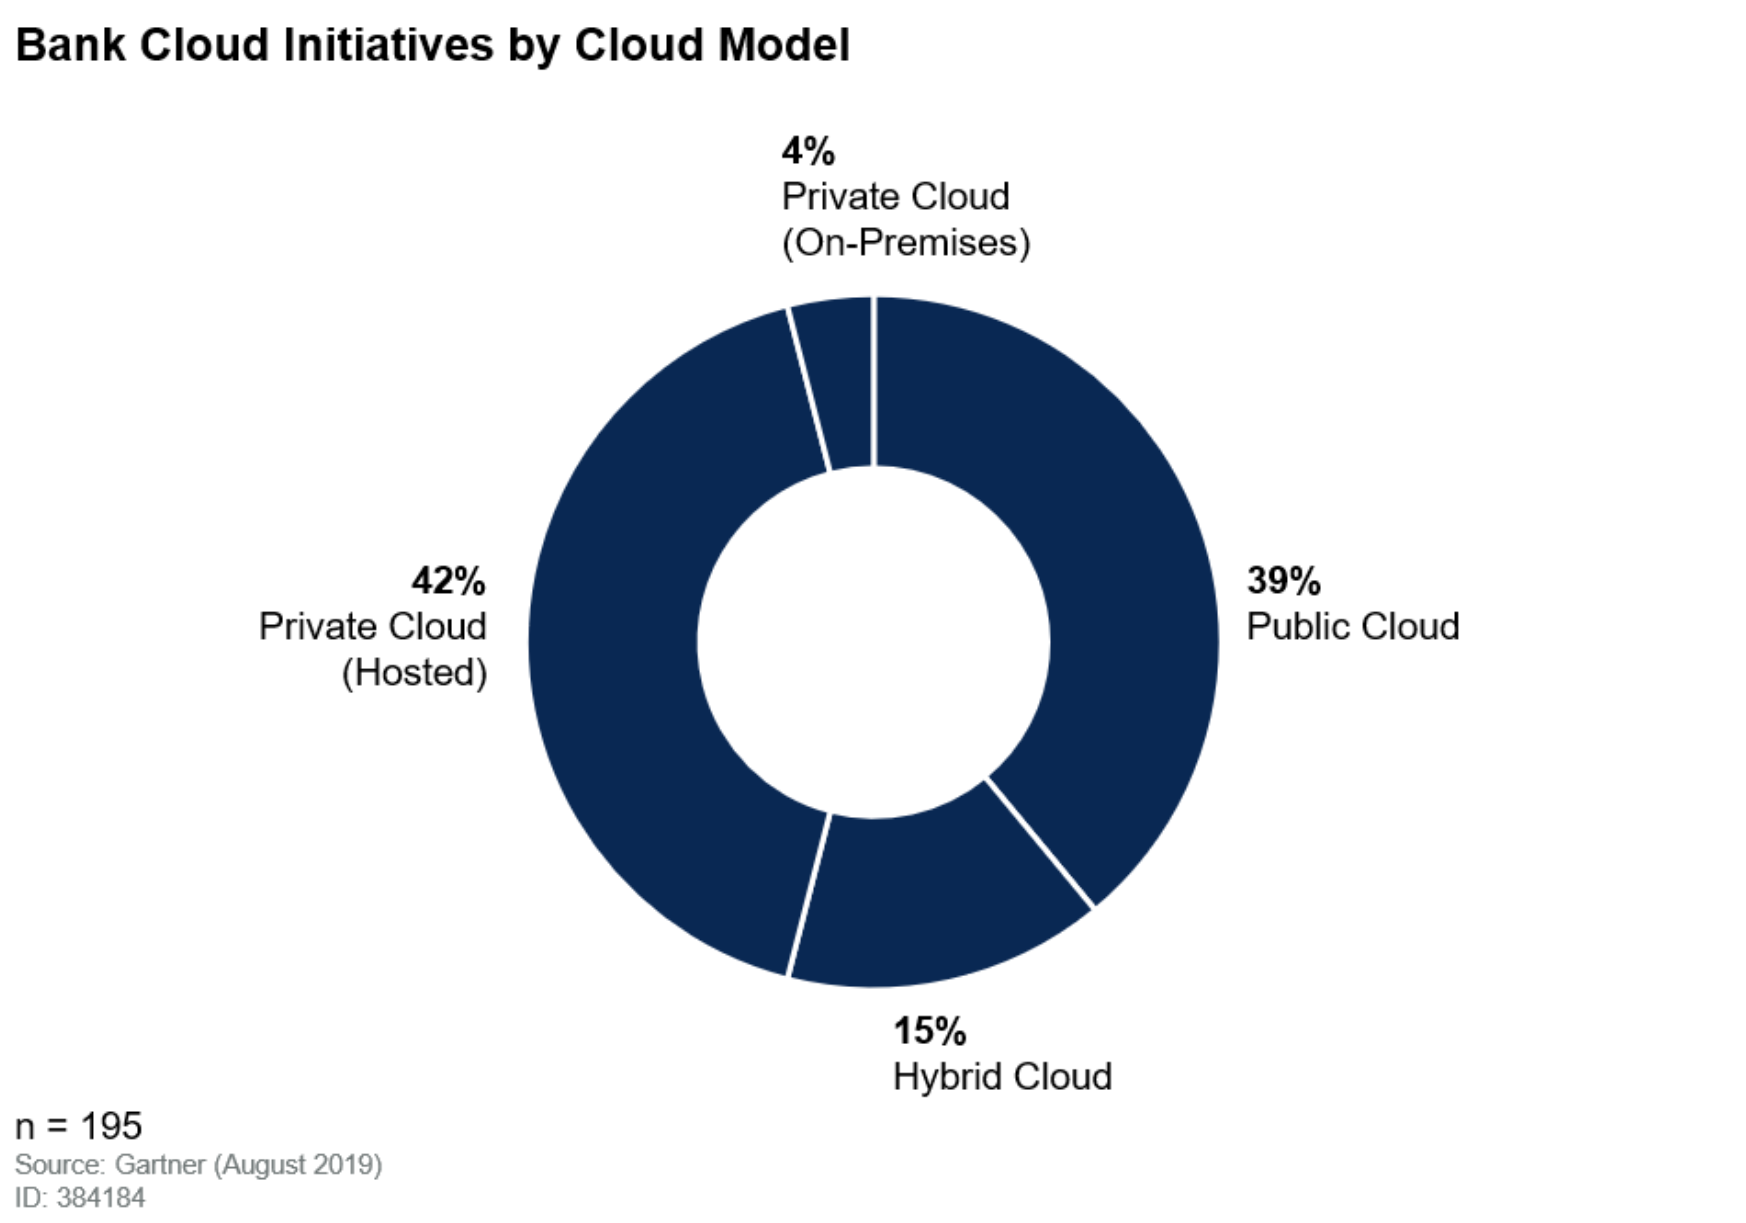 Bank cloud initiatives by cloud model. Source: Gartner Cloud Heatmap for Banking & Investment Services 2019